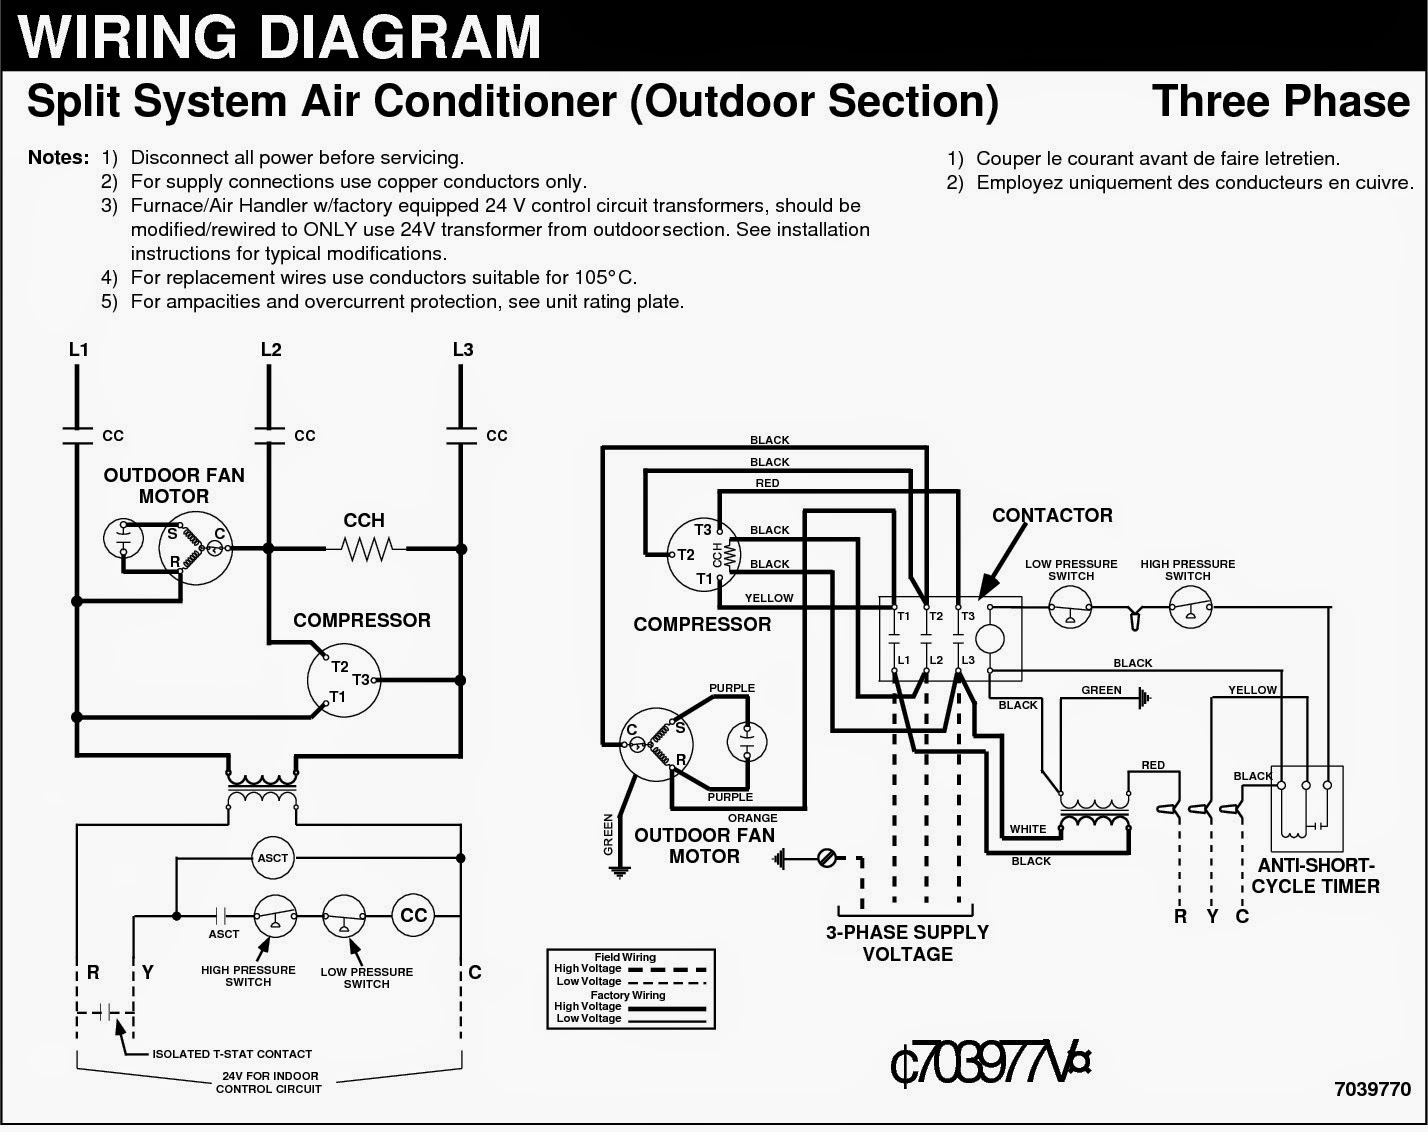 3+phase electrical wiring diagrams for air conditioning systems part two three phase electrical wiring diagram at edmiracle.co